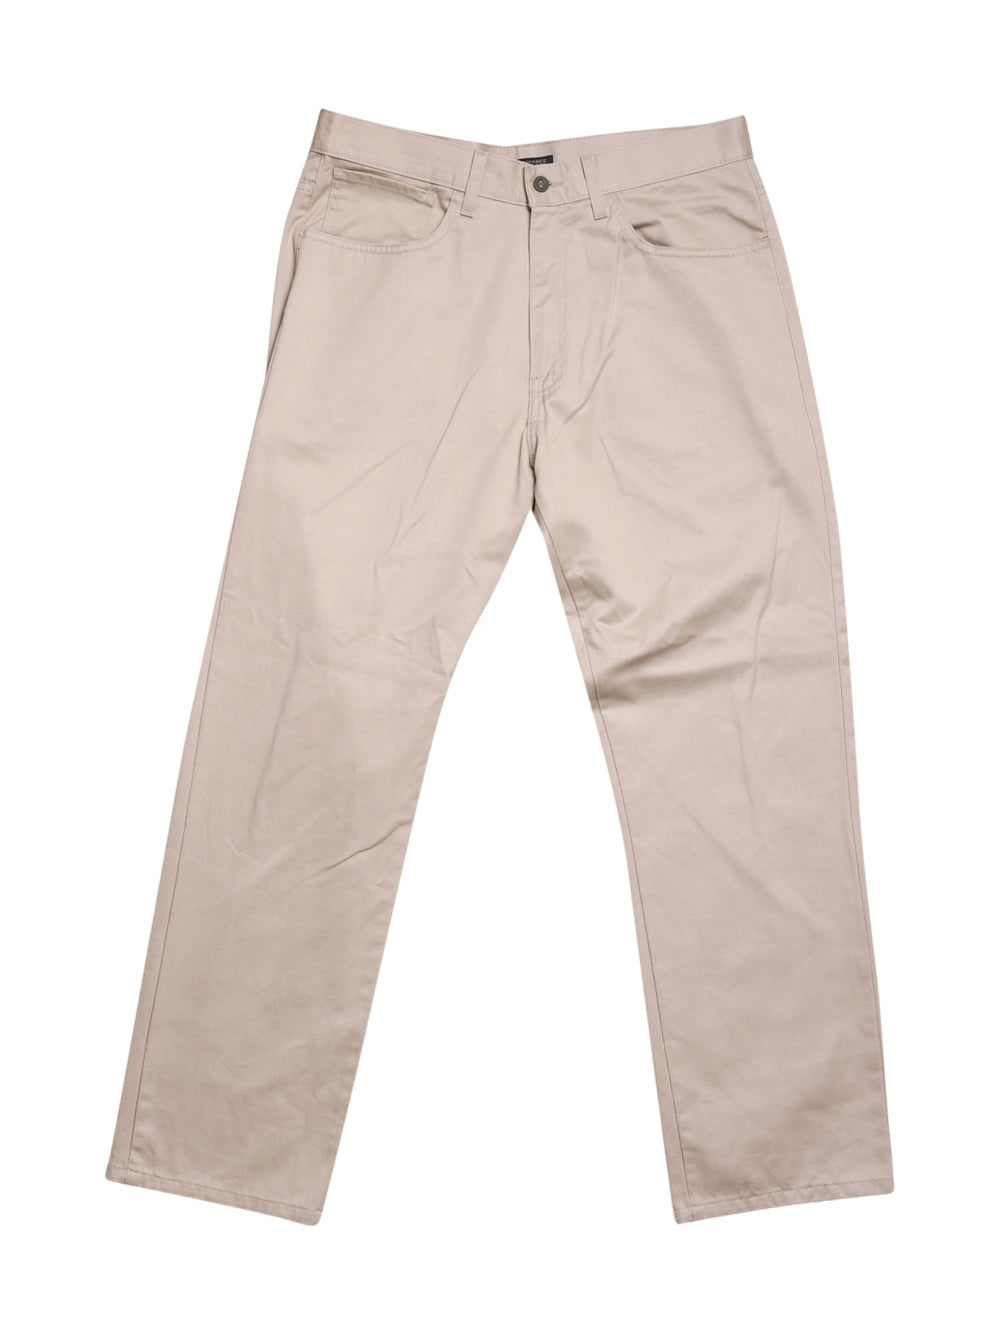 Front photo of Preloved Dockers Beige Man's trousers - size 38/M